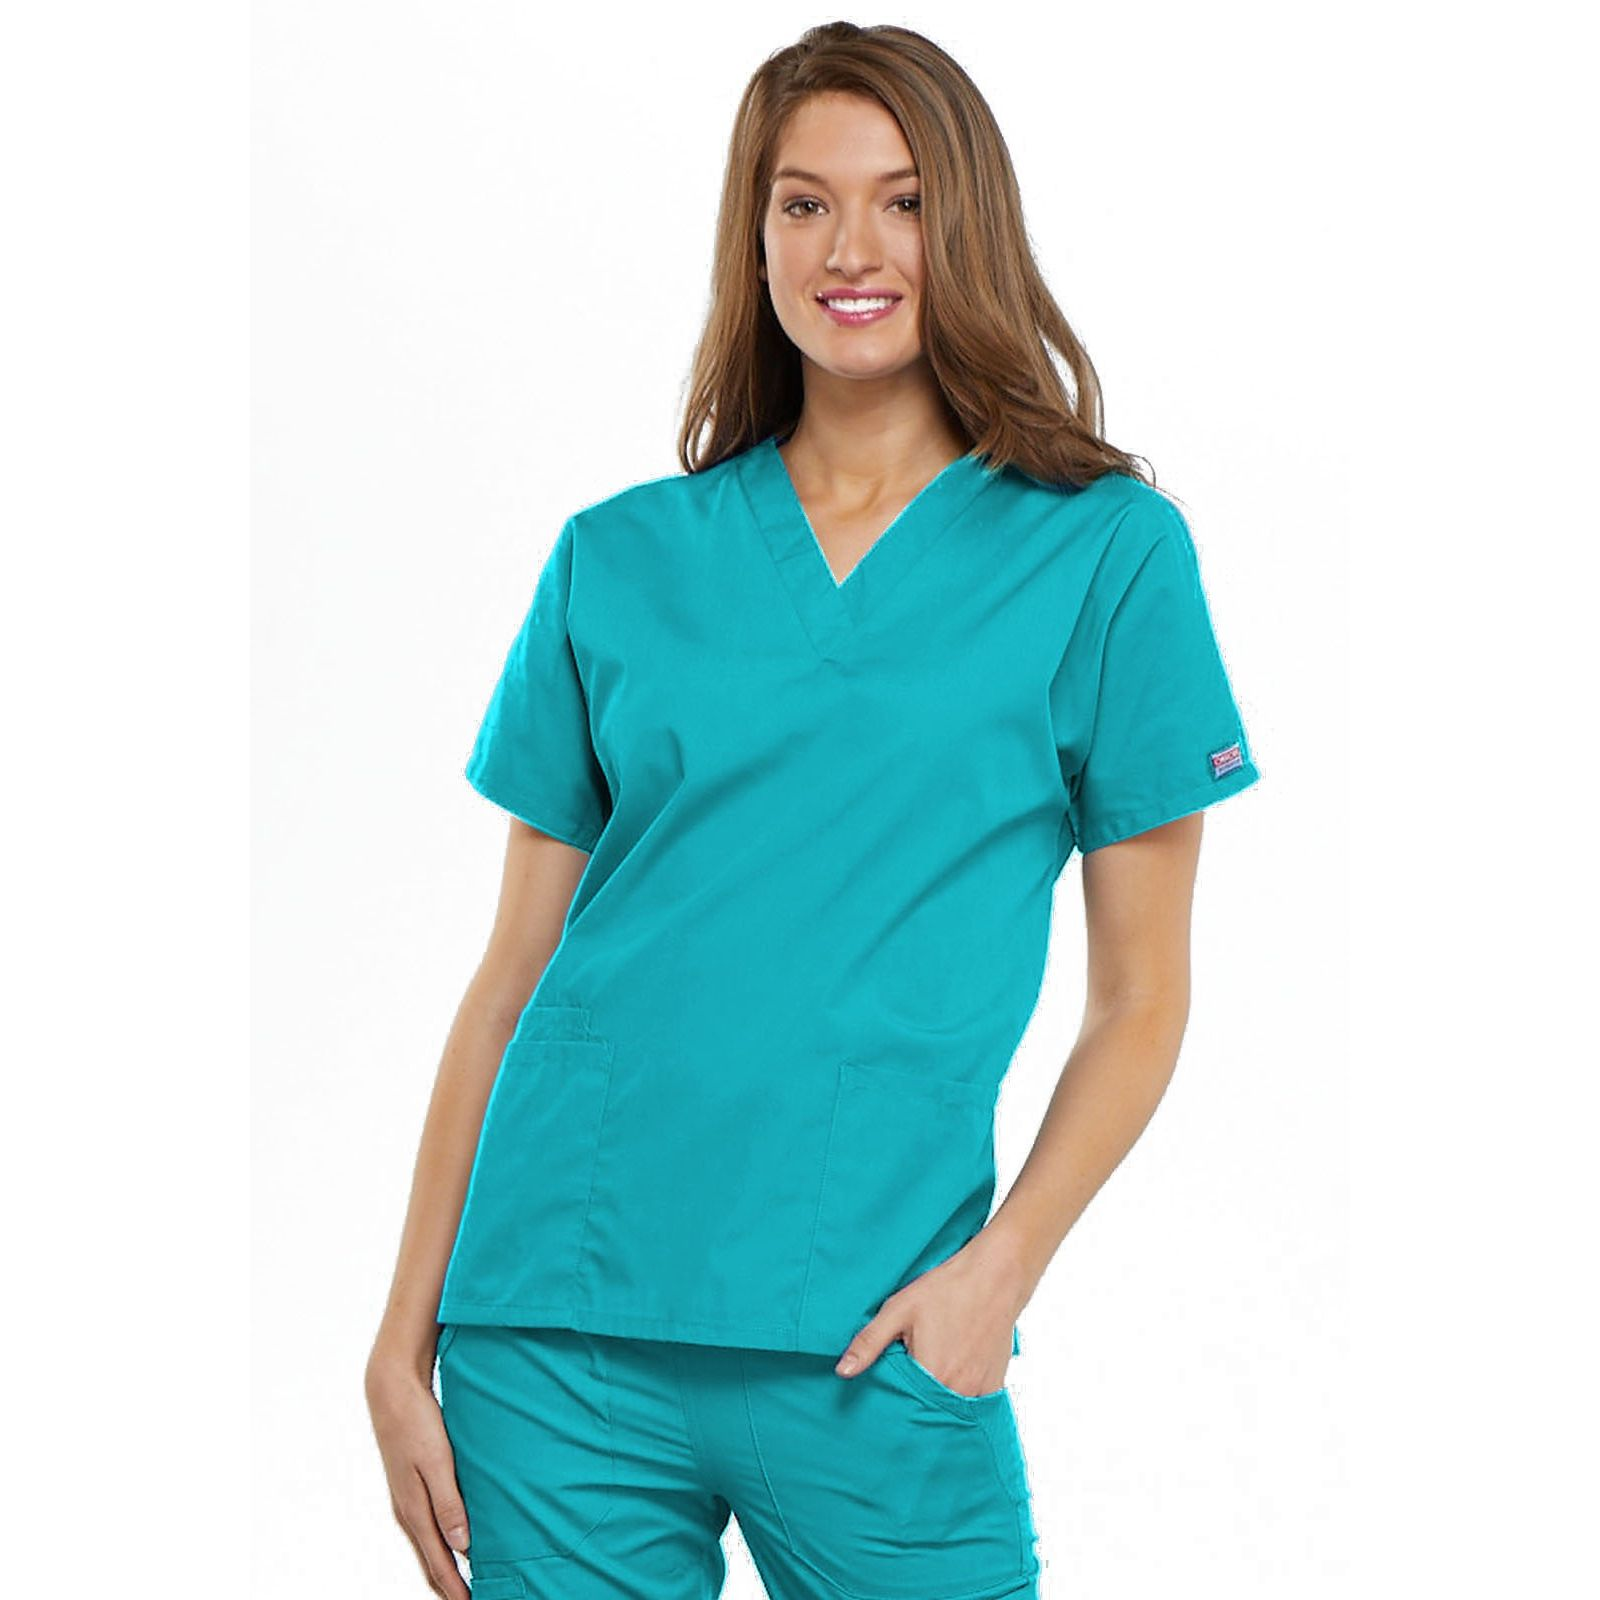 Blouse médicale Femme, 2 poches, Cherokee Workwear Originals (4700)